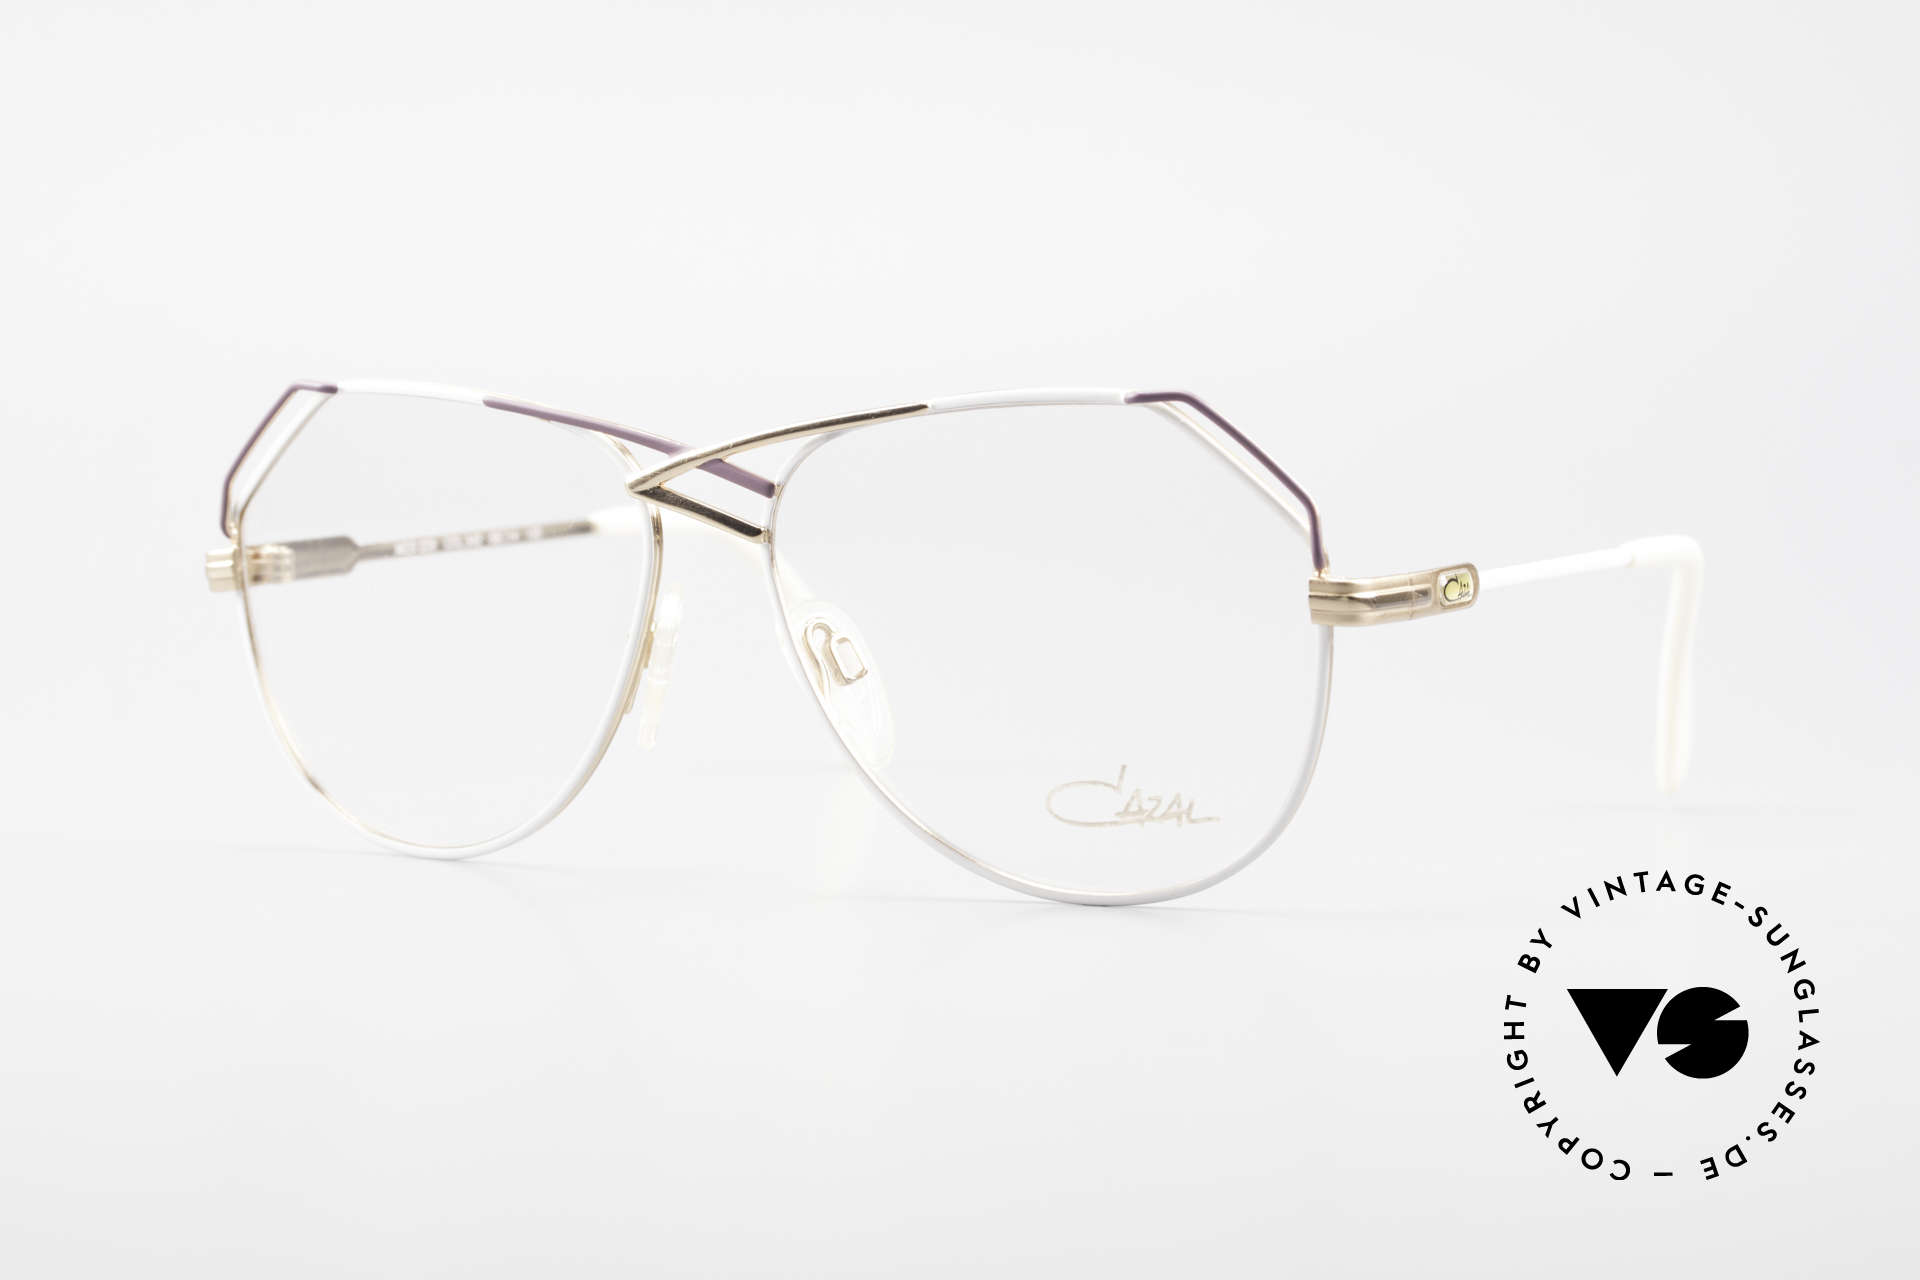 Cazal 229 West Germany Vintage Cazal, amazing CAZAL designer specs from the late 80's, Made for Women